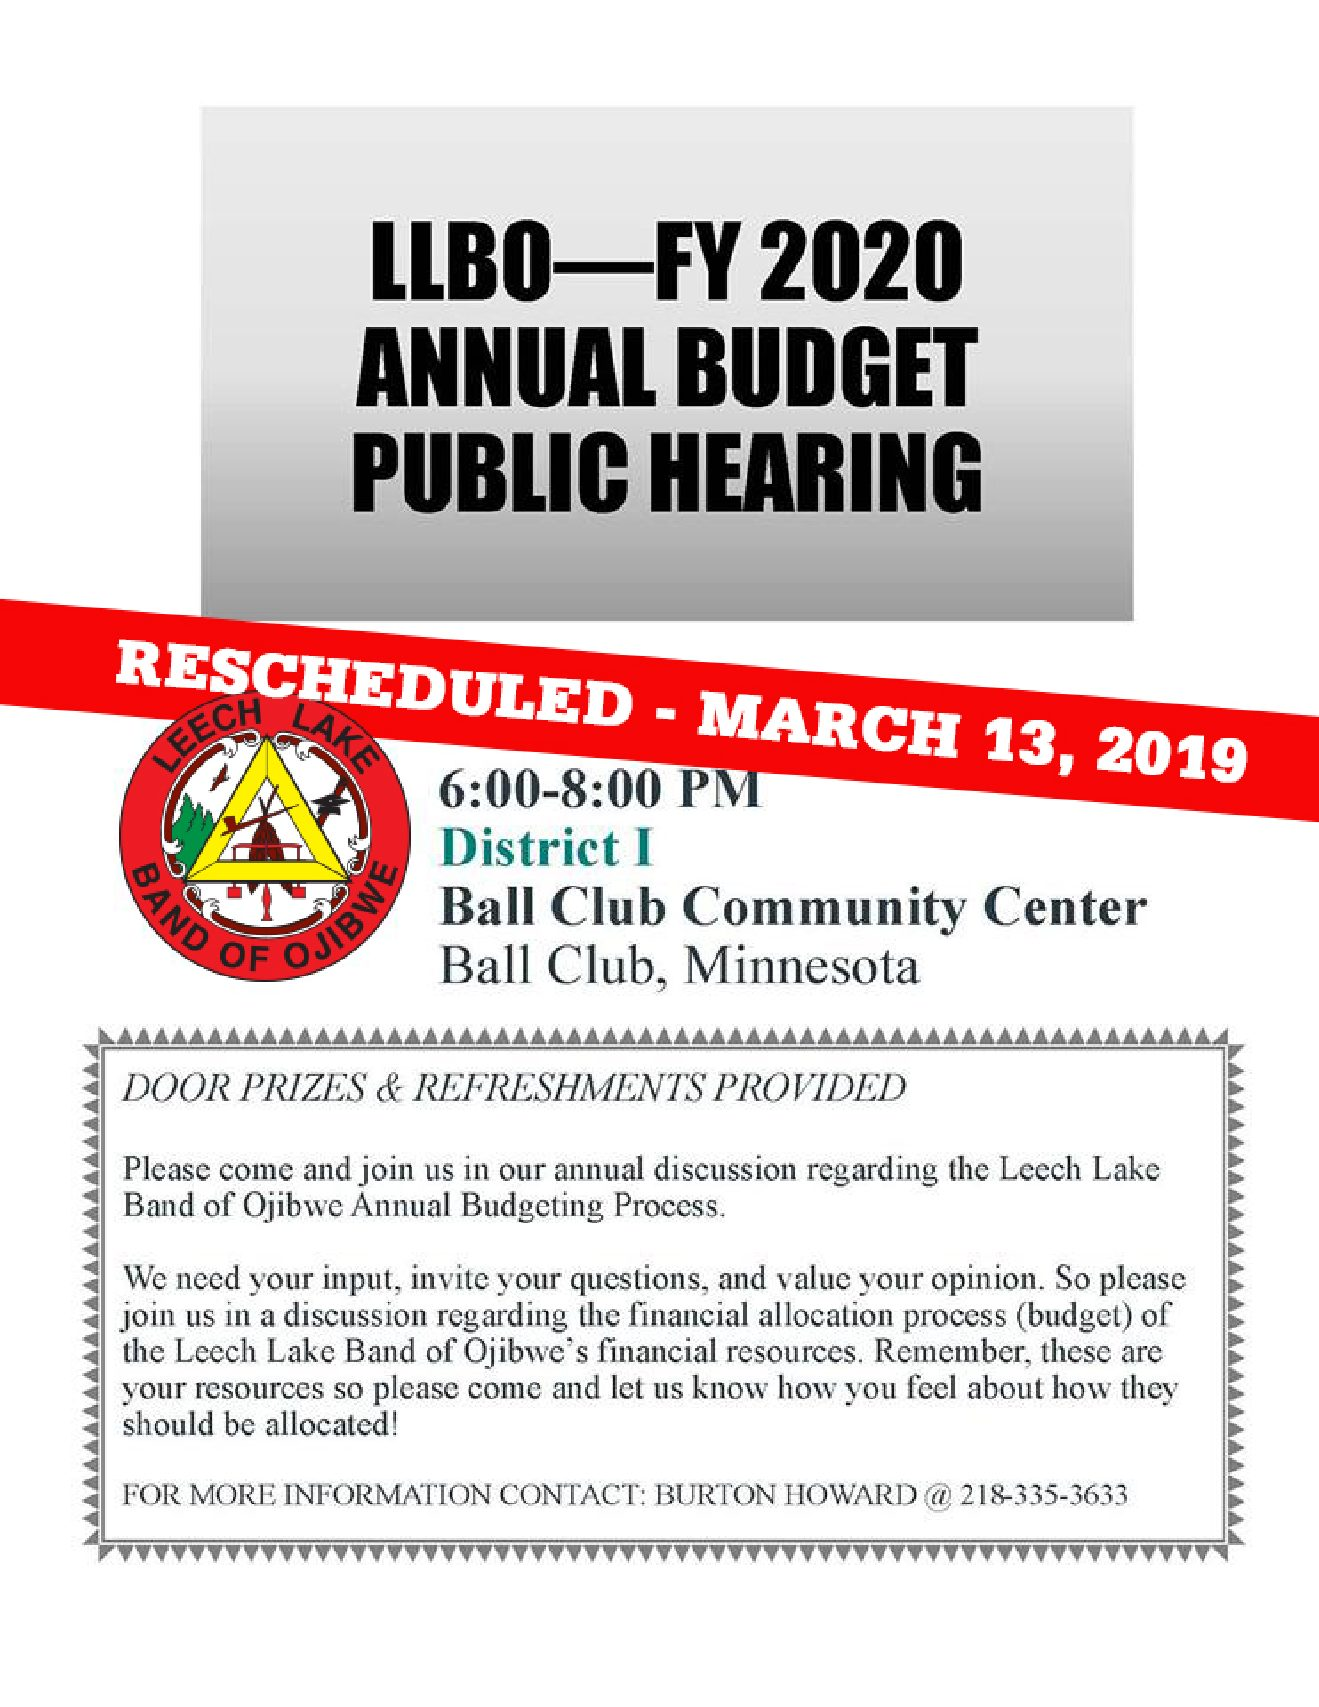 FY2020 Annual Budget Public Hearing- District 1 - Leech Lake